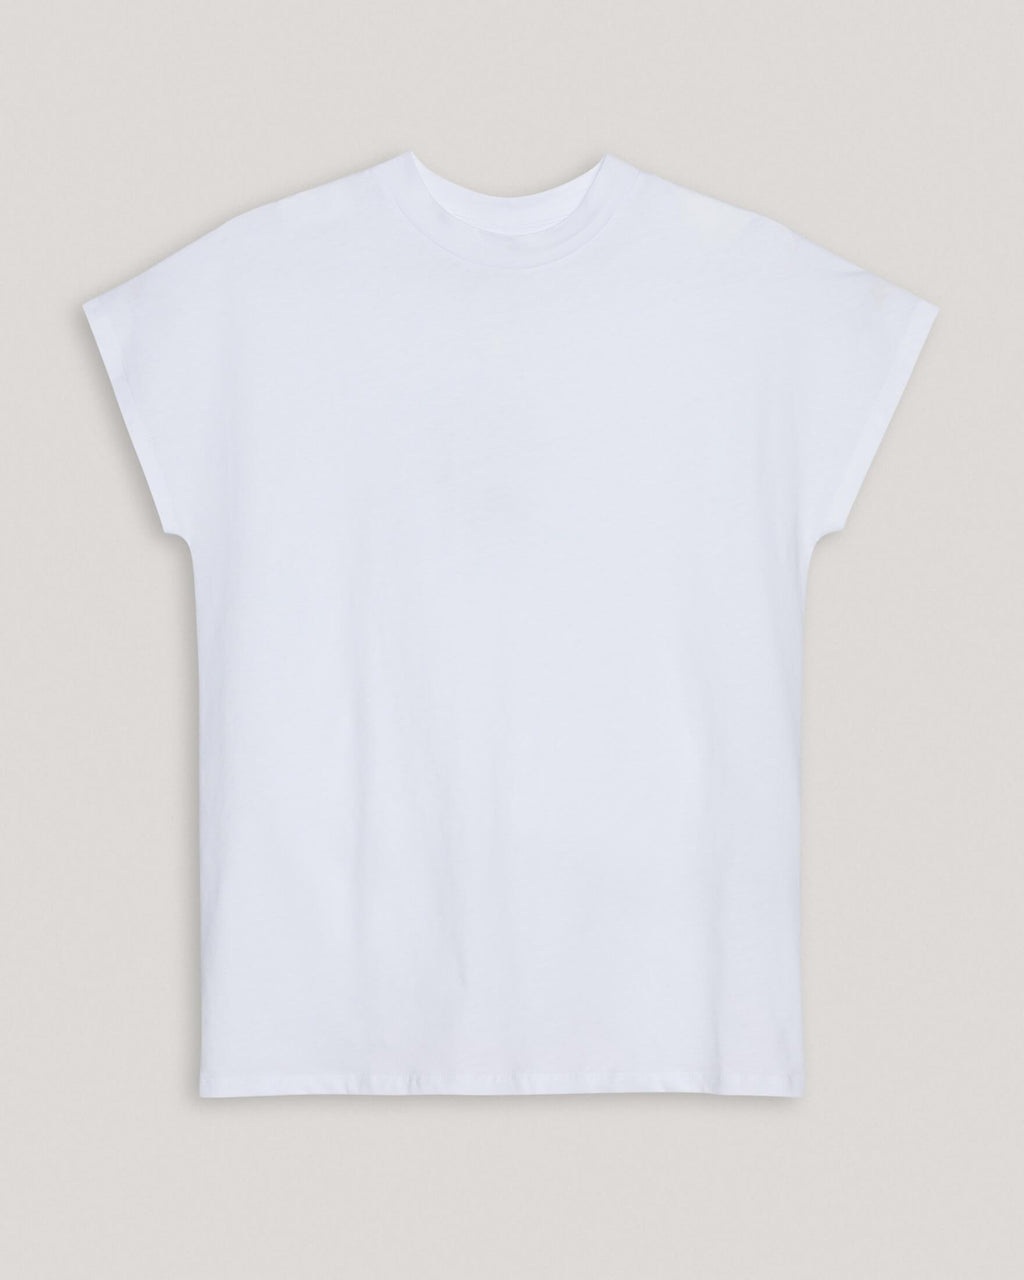 variant_1 | EN Shirt Basic White Women won hundred | DE T-Shirt Basic Weiß Damen won hundred